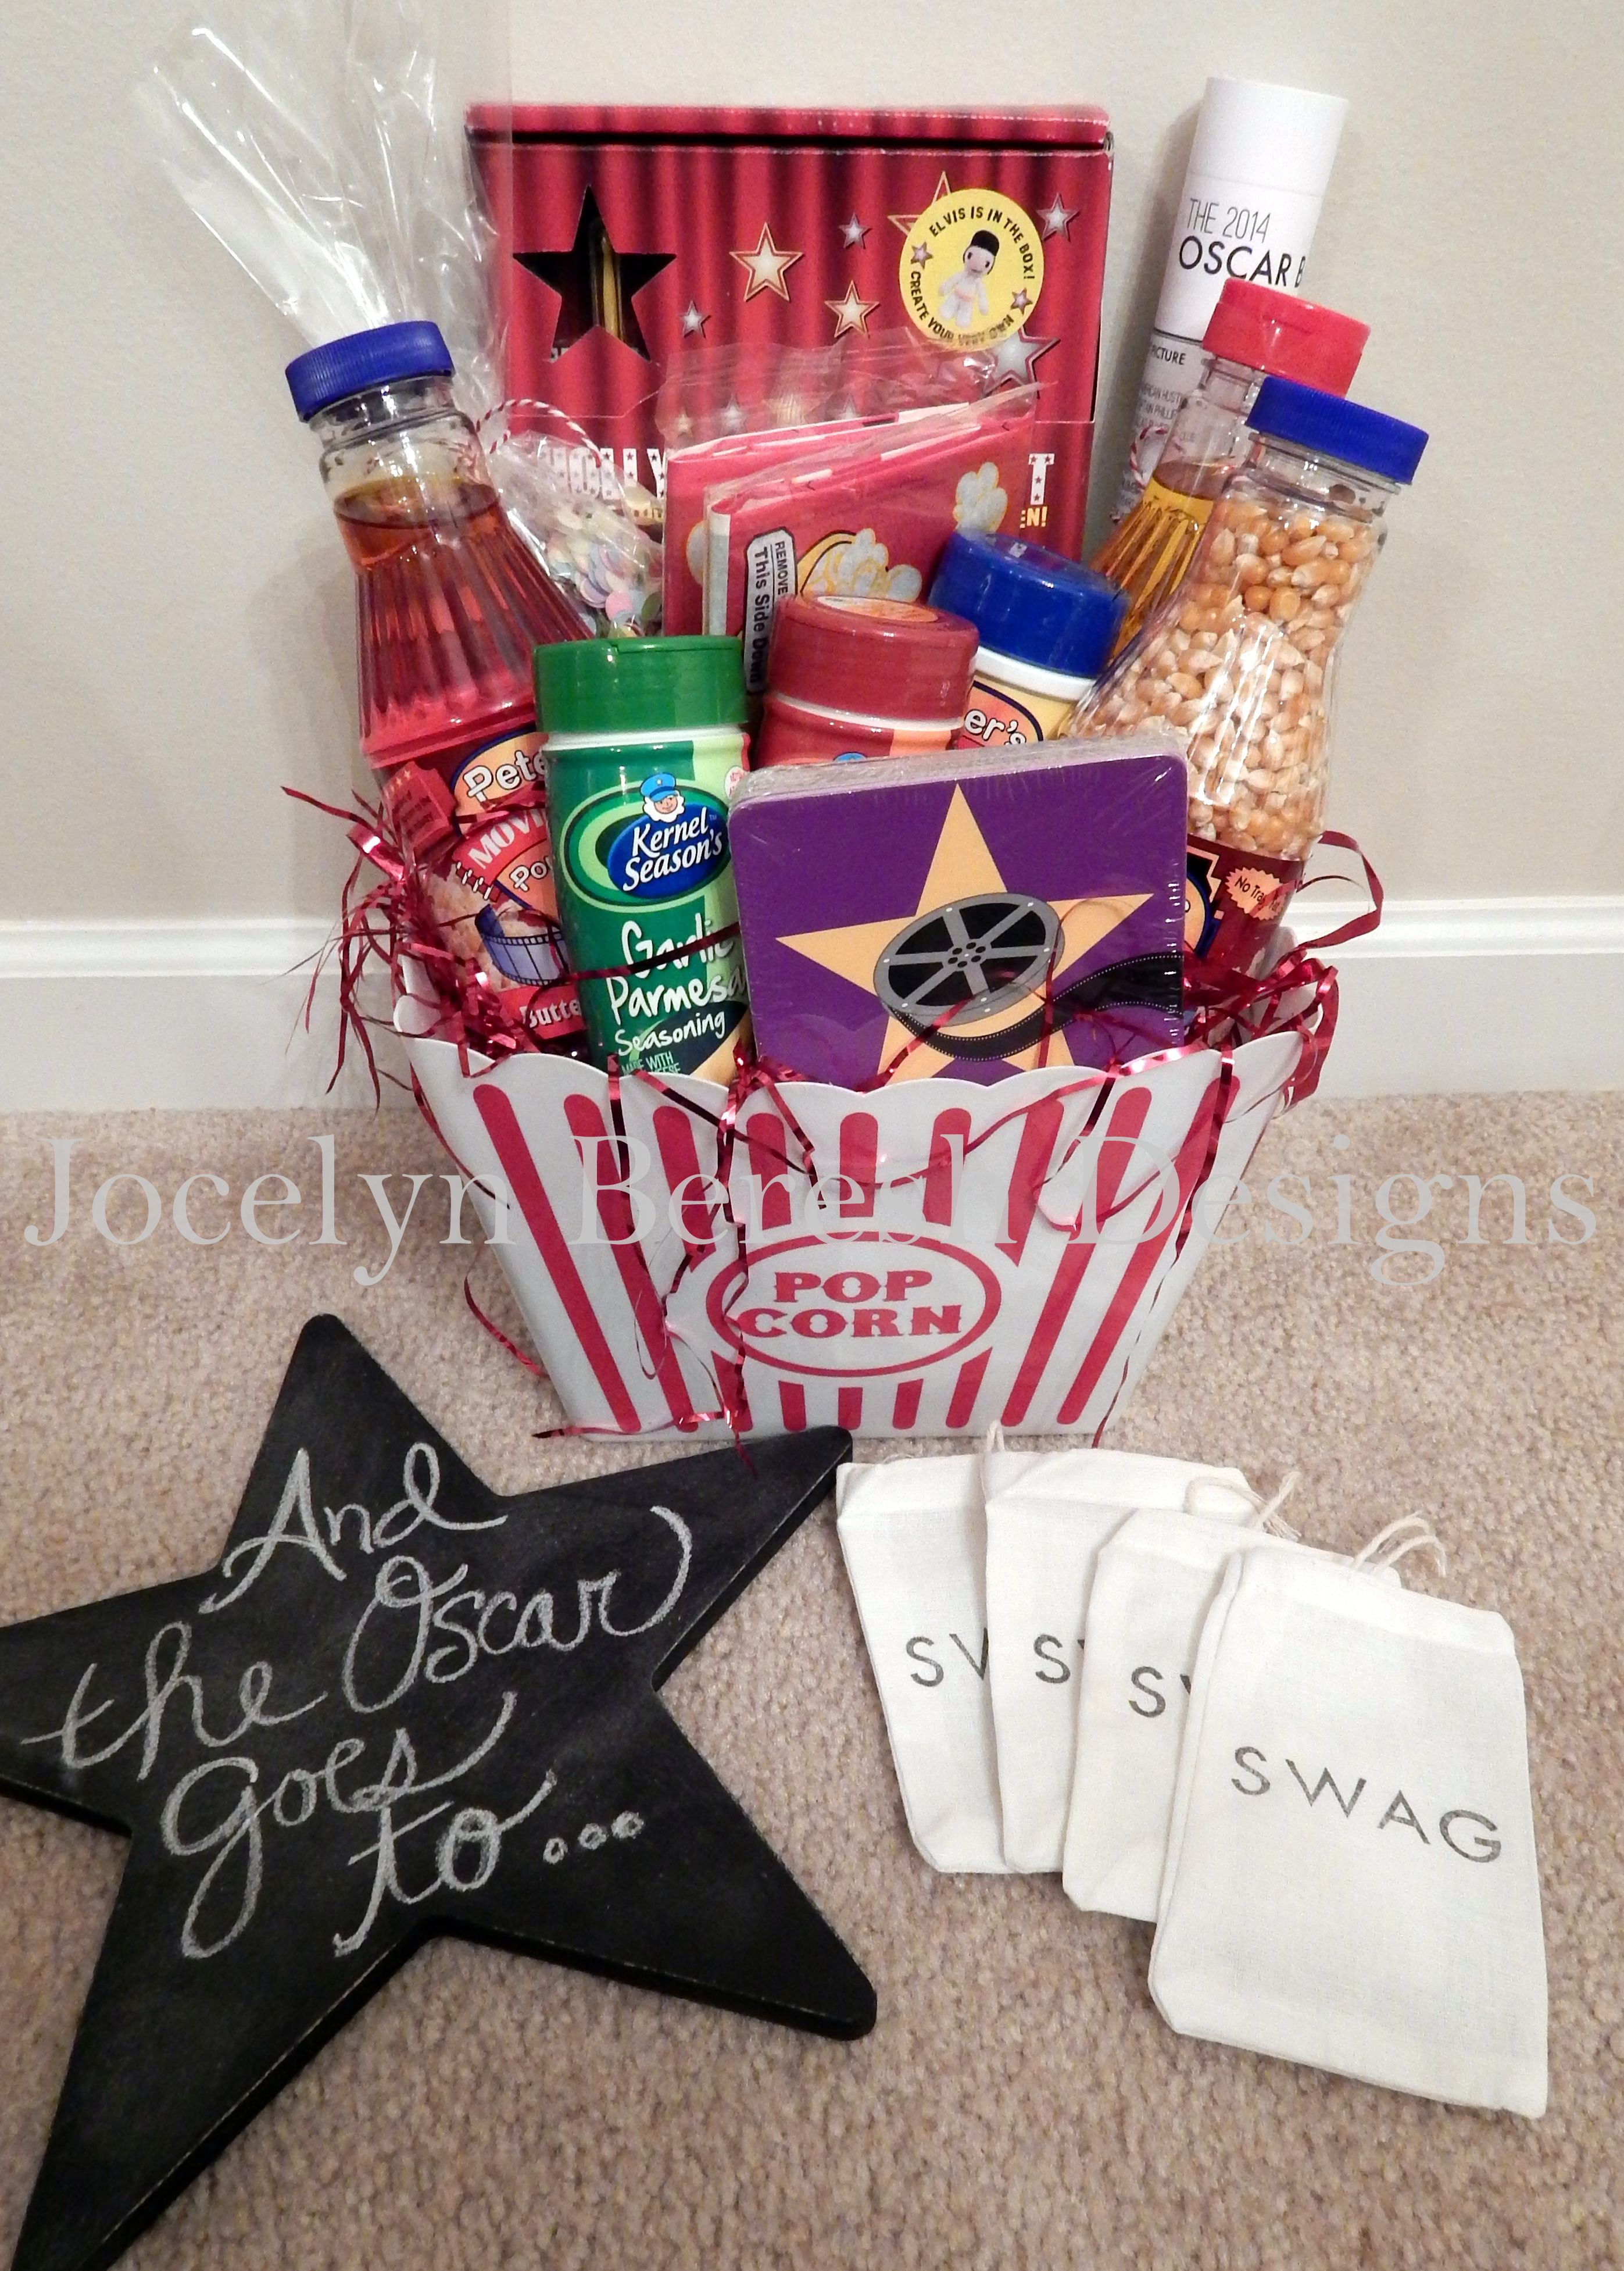 Oscars Party Gift Basket By Jocelynbereshdesigns Luxury Baskets Custom Swag Bag Favors And Chalkboard Jbd